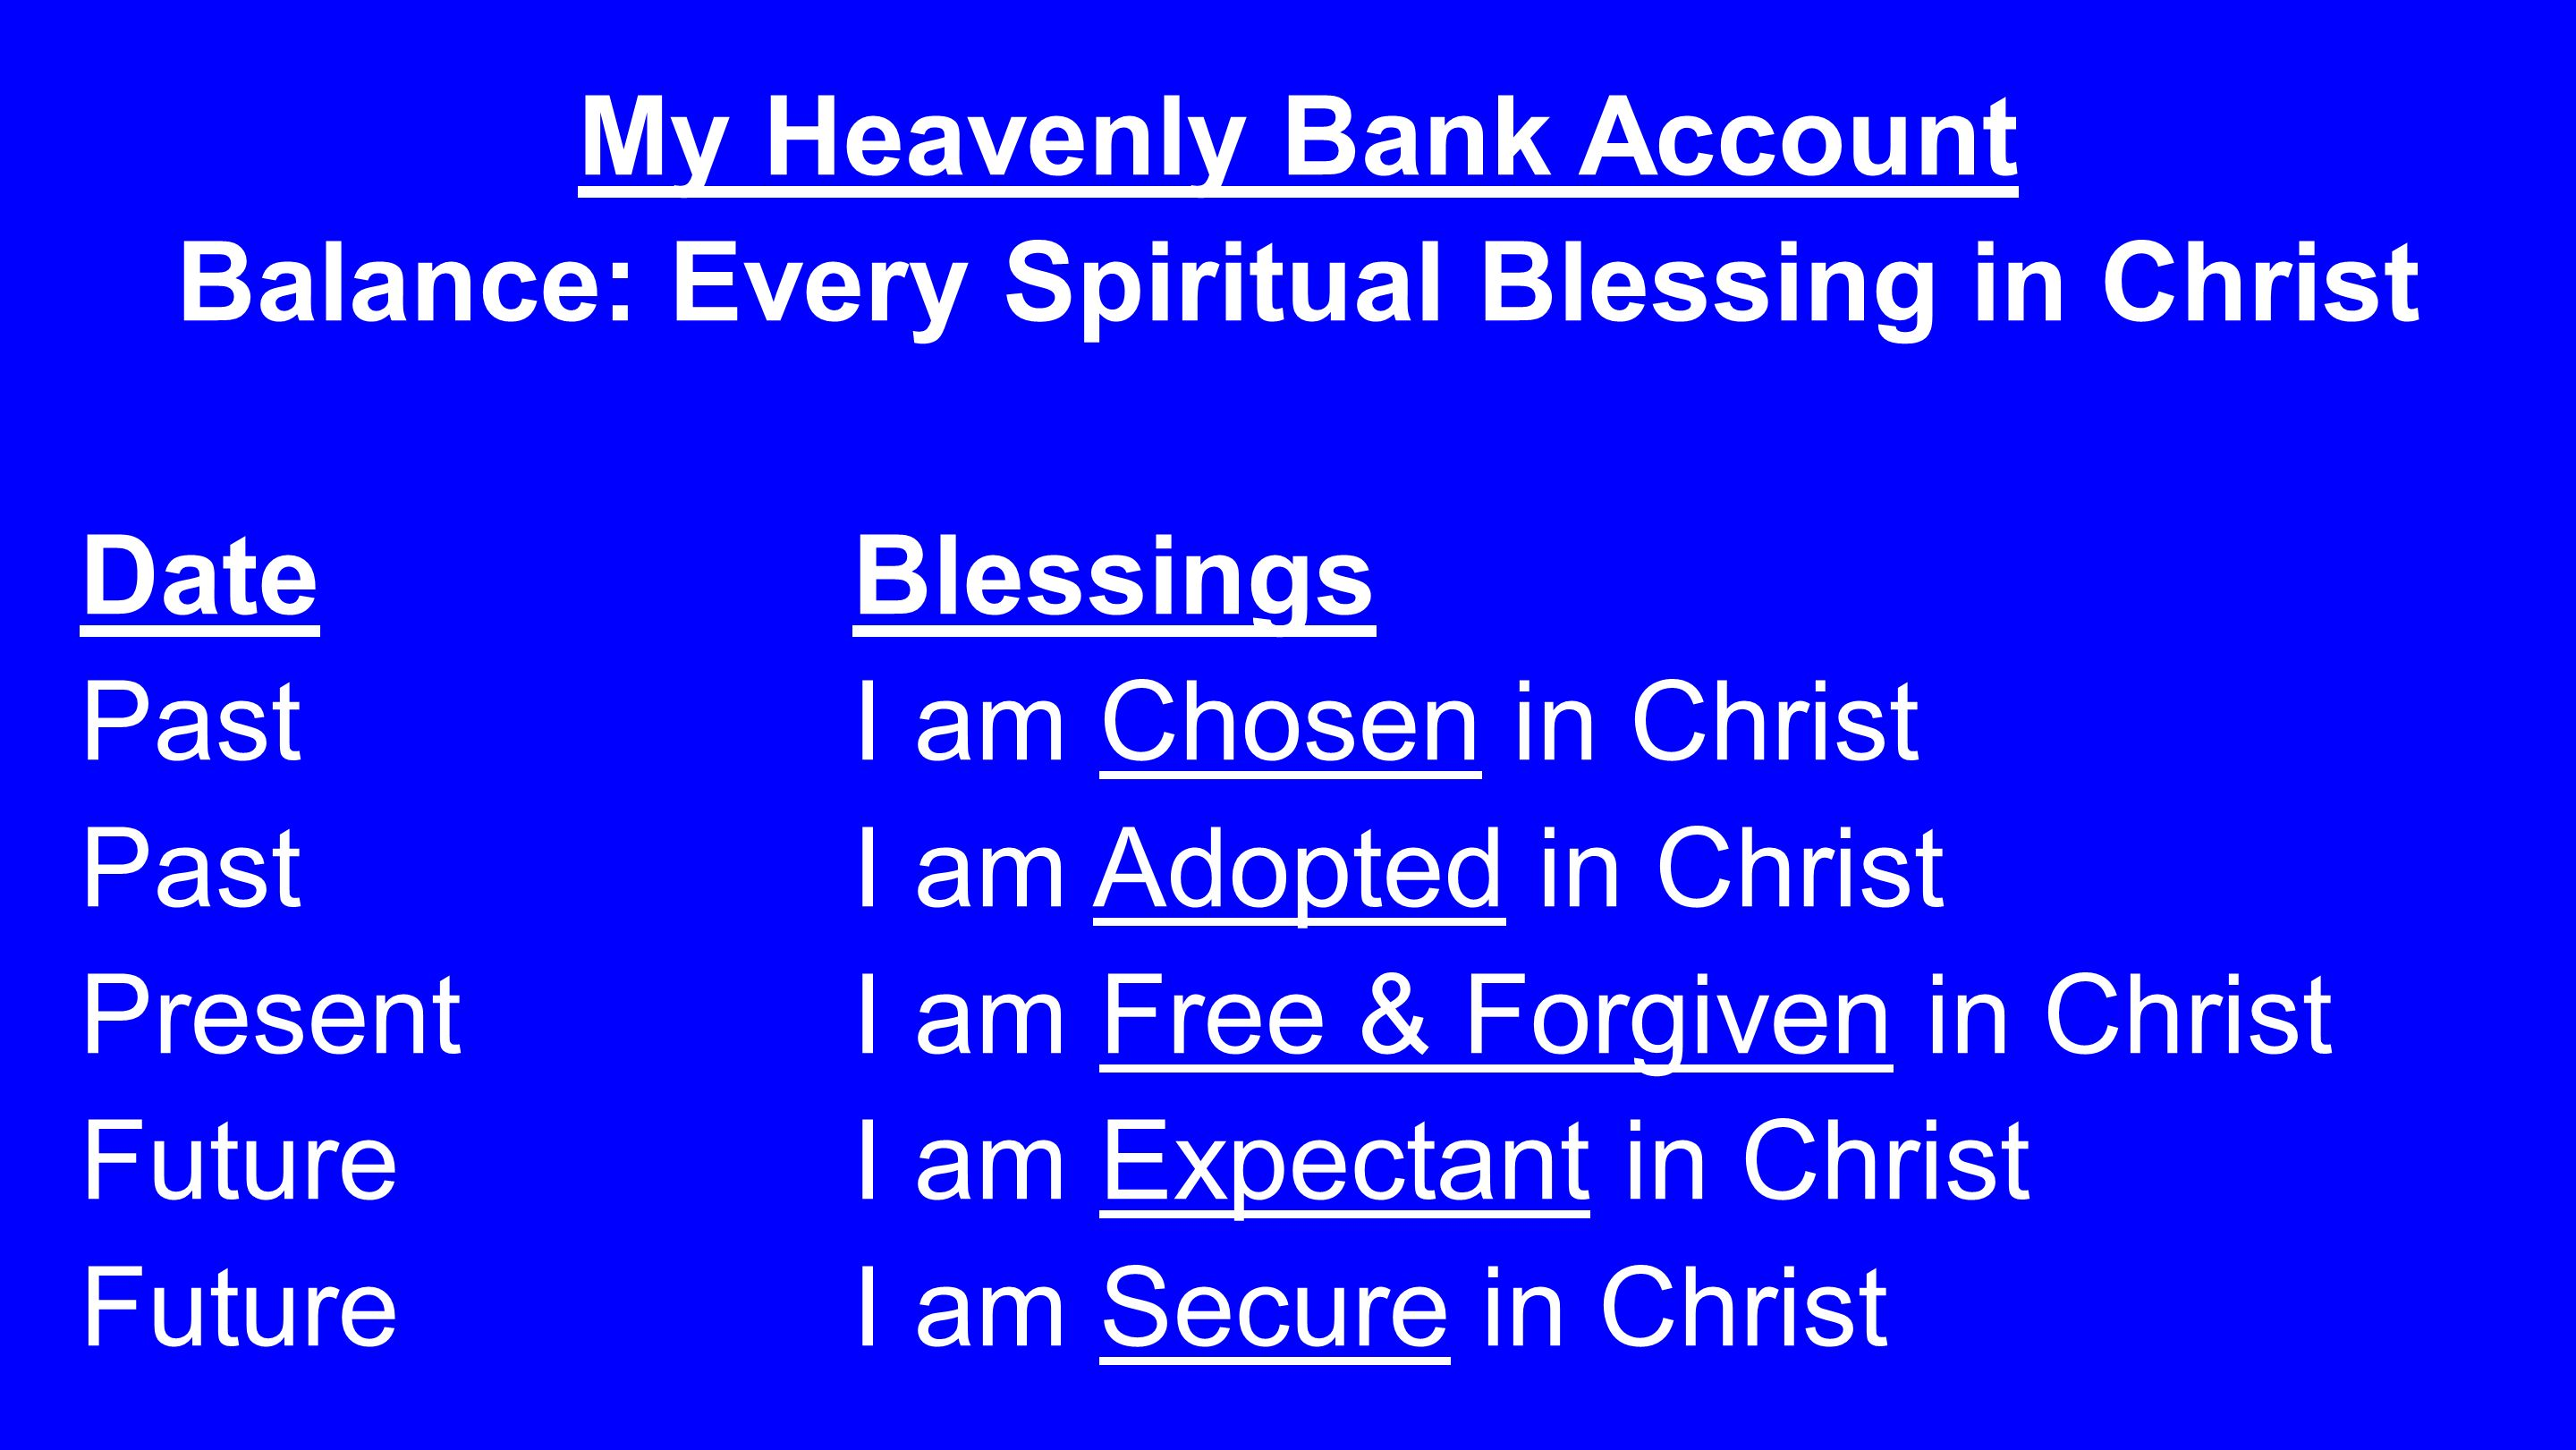 My Heavenly Bank Account Balance: Every Spiritual Blessing in Christ DateBlessings Past I am Chosen in Christ PastI am Adopted in Christ PresentI am Free & Forgiven in Christ FutureI am Expectant in Christ Future I am Secure in Christ